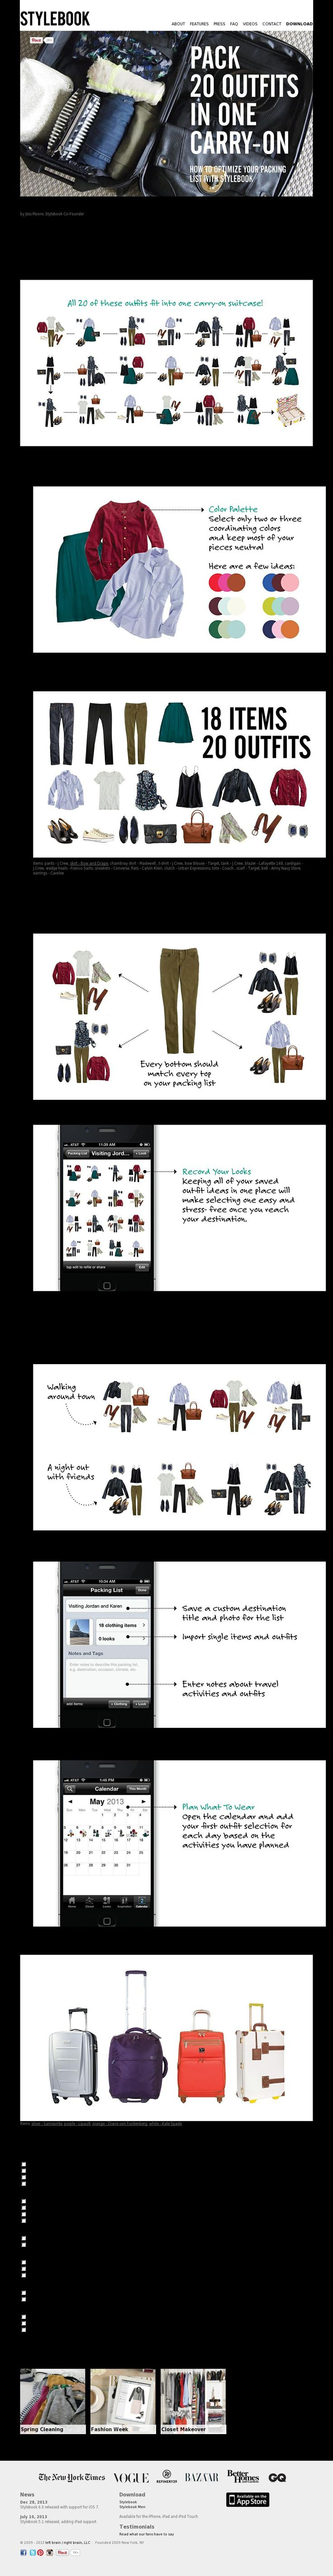 http://www.stylebookapp.com. I am not that organized but this has good info